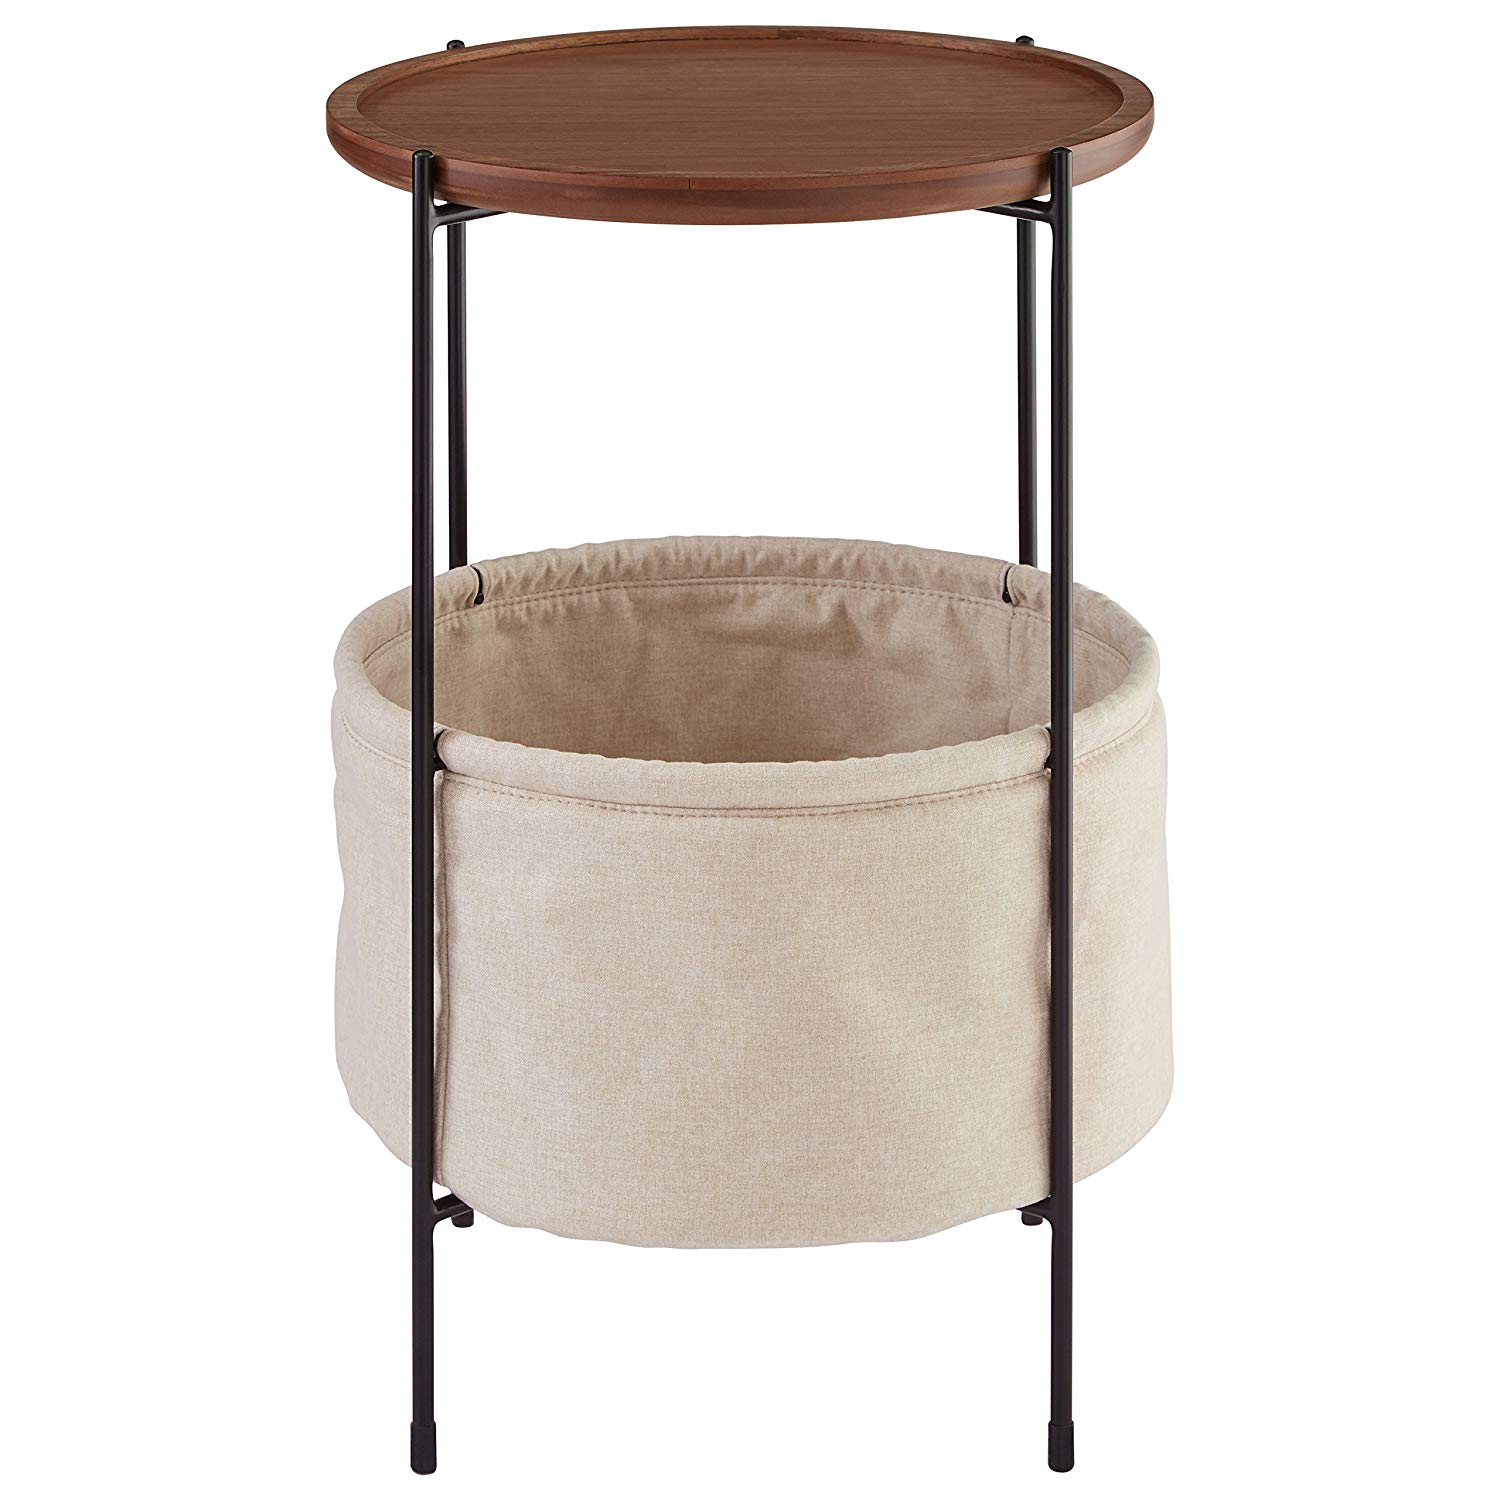 rivet meeks round storage basket side table walnut and accent with baskets cream fabric kitchen dining bathroom outdoor cover clear cast aluminum coffee big lots chairs oak